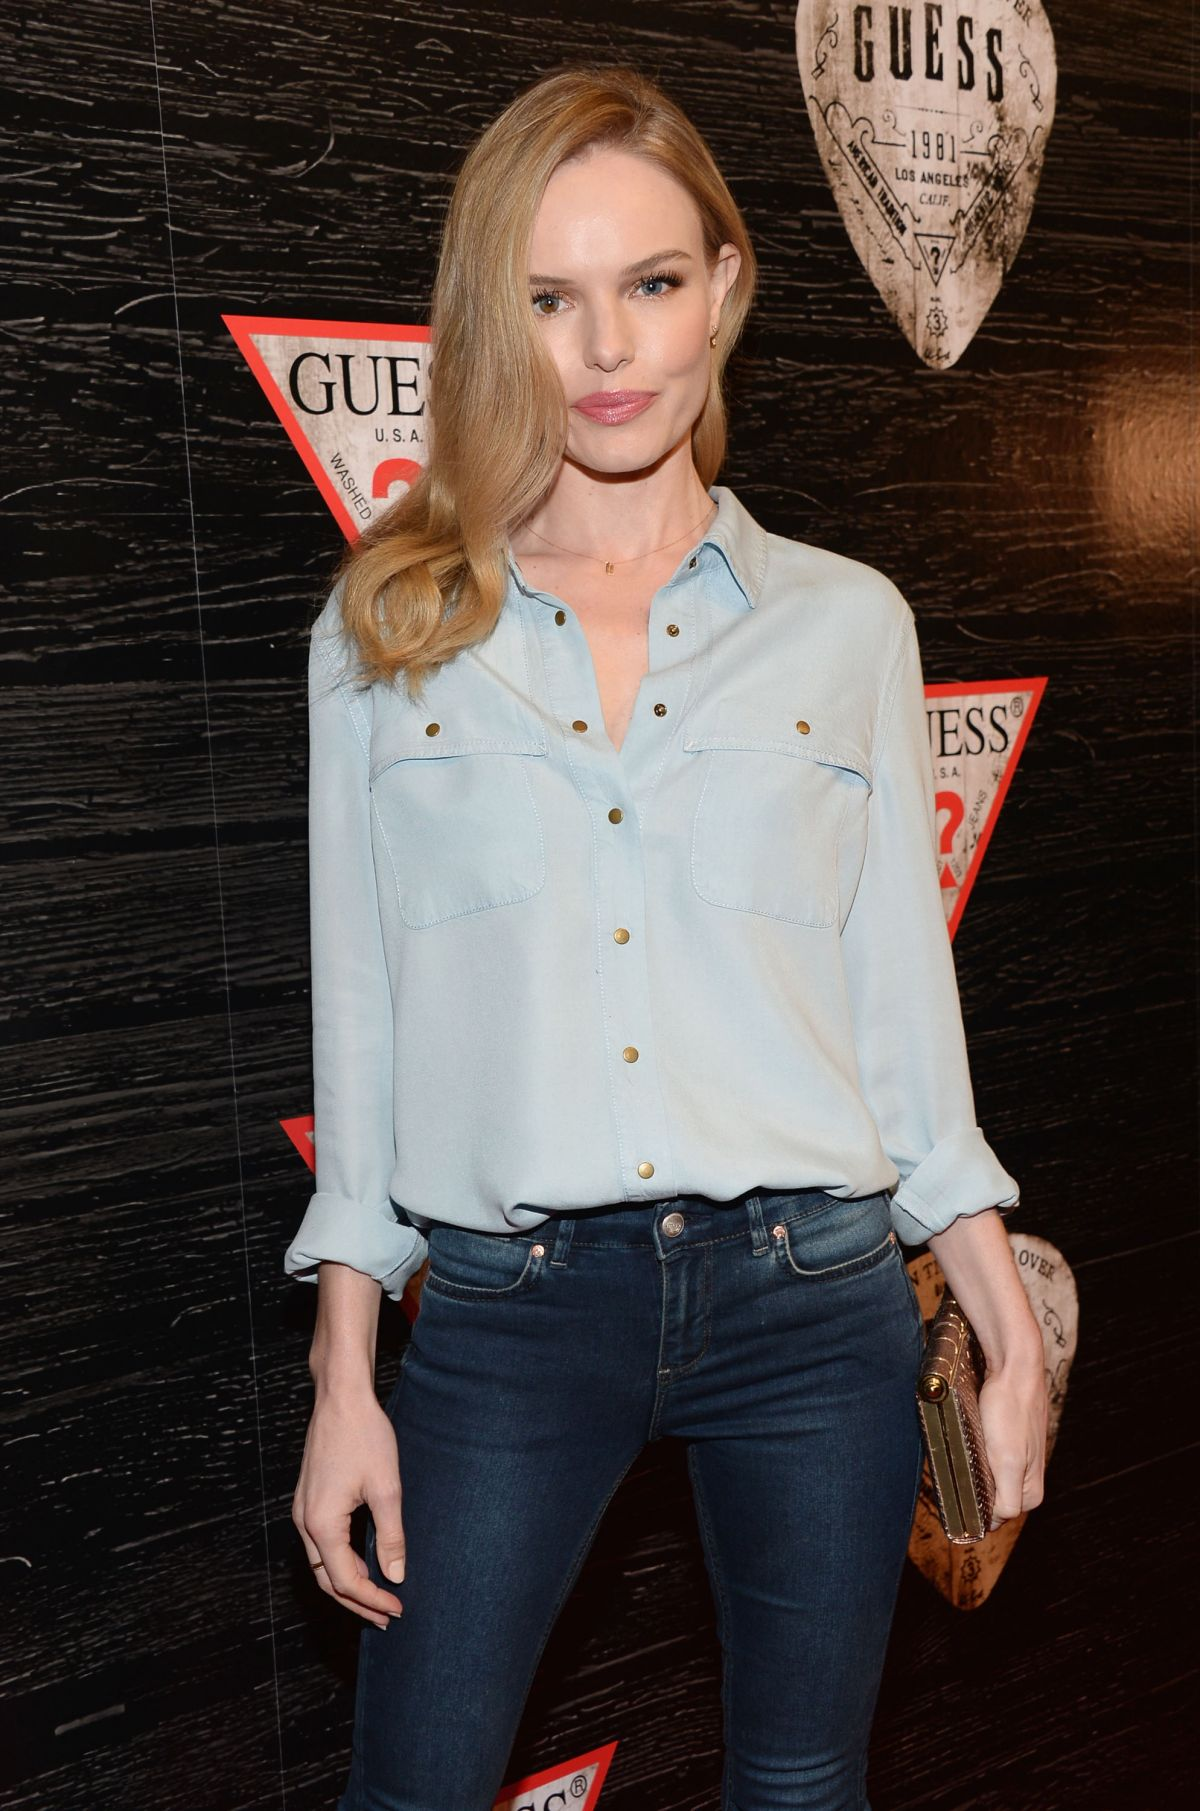 Kate Bosworth Archives - Page 3 of 3 - HawtCelebs - HawtCelebs Kate Bosworth